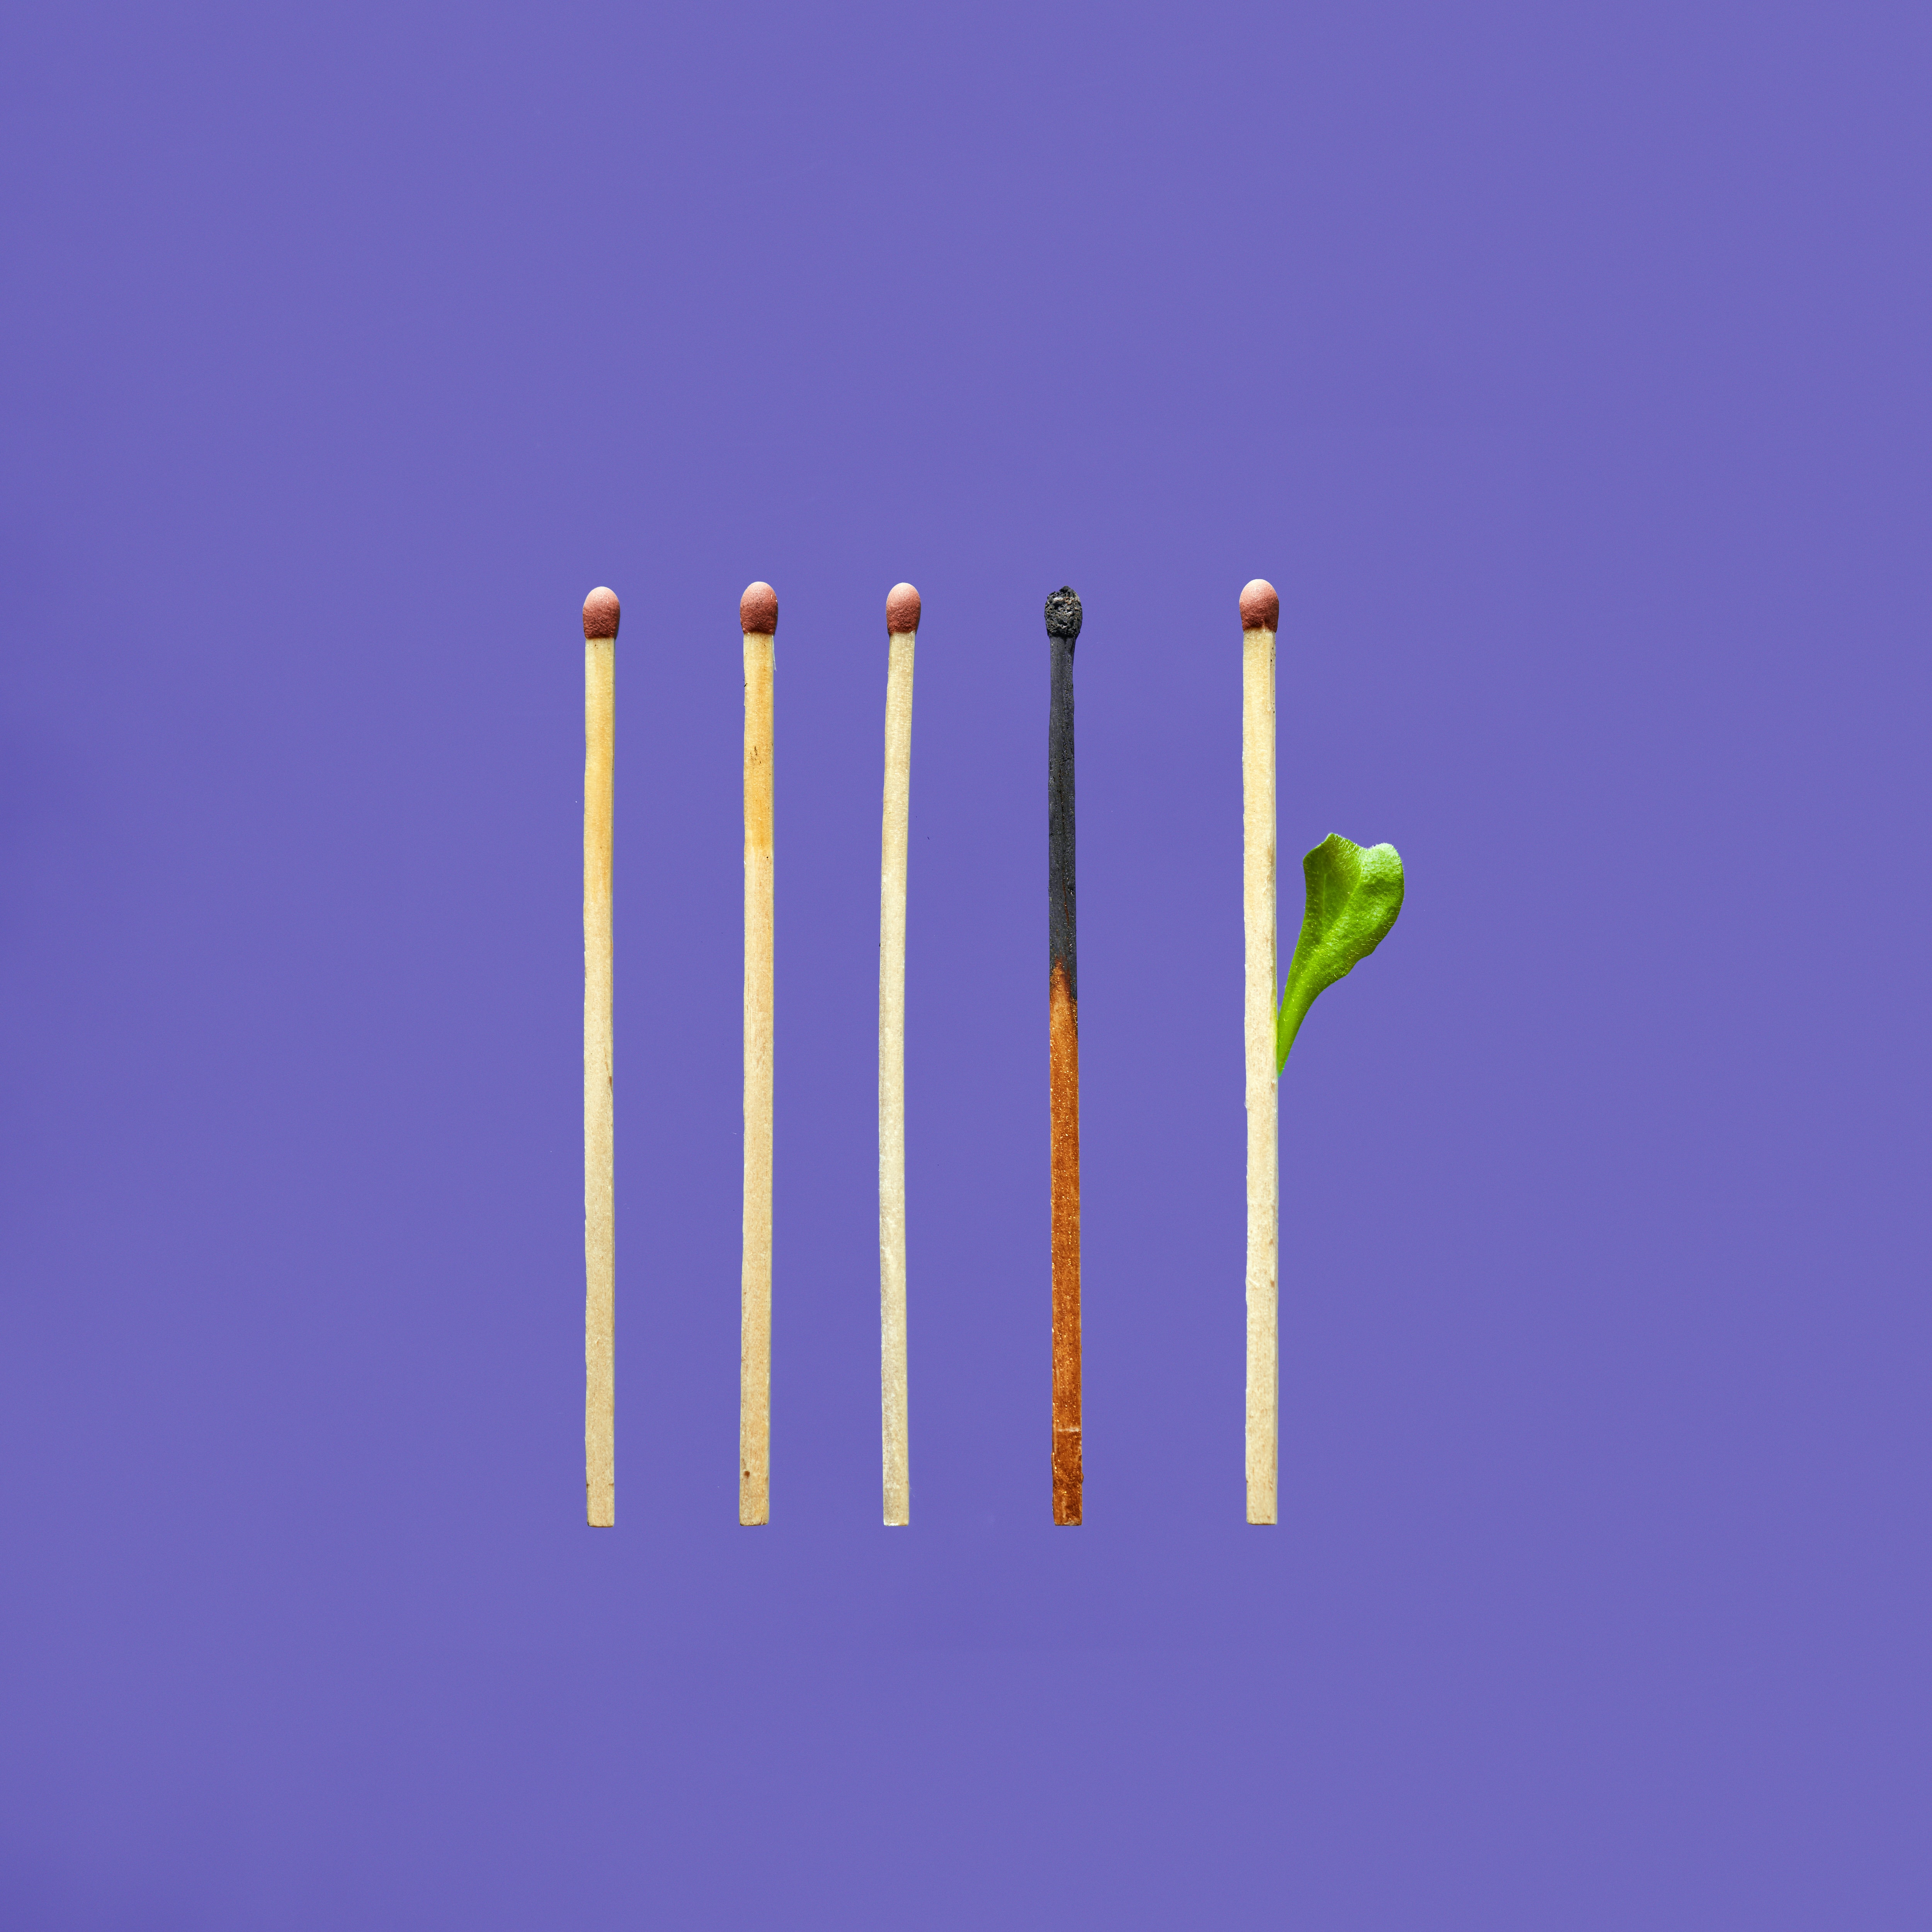 photo of one burnt match surrounded by unused matches, one with a leaf growing out. Posted on Dr. James Goydos 2021 article on burnout.